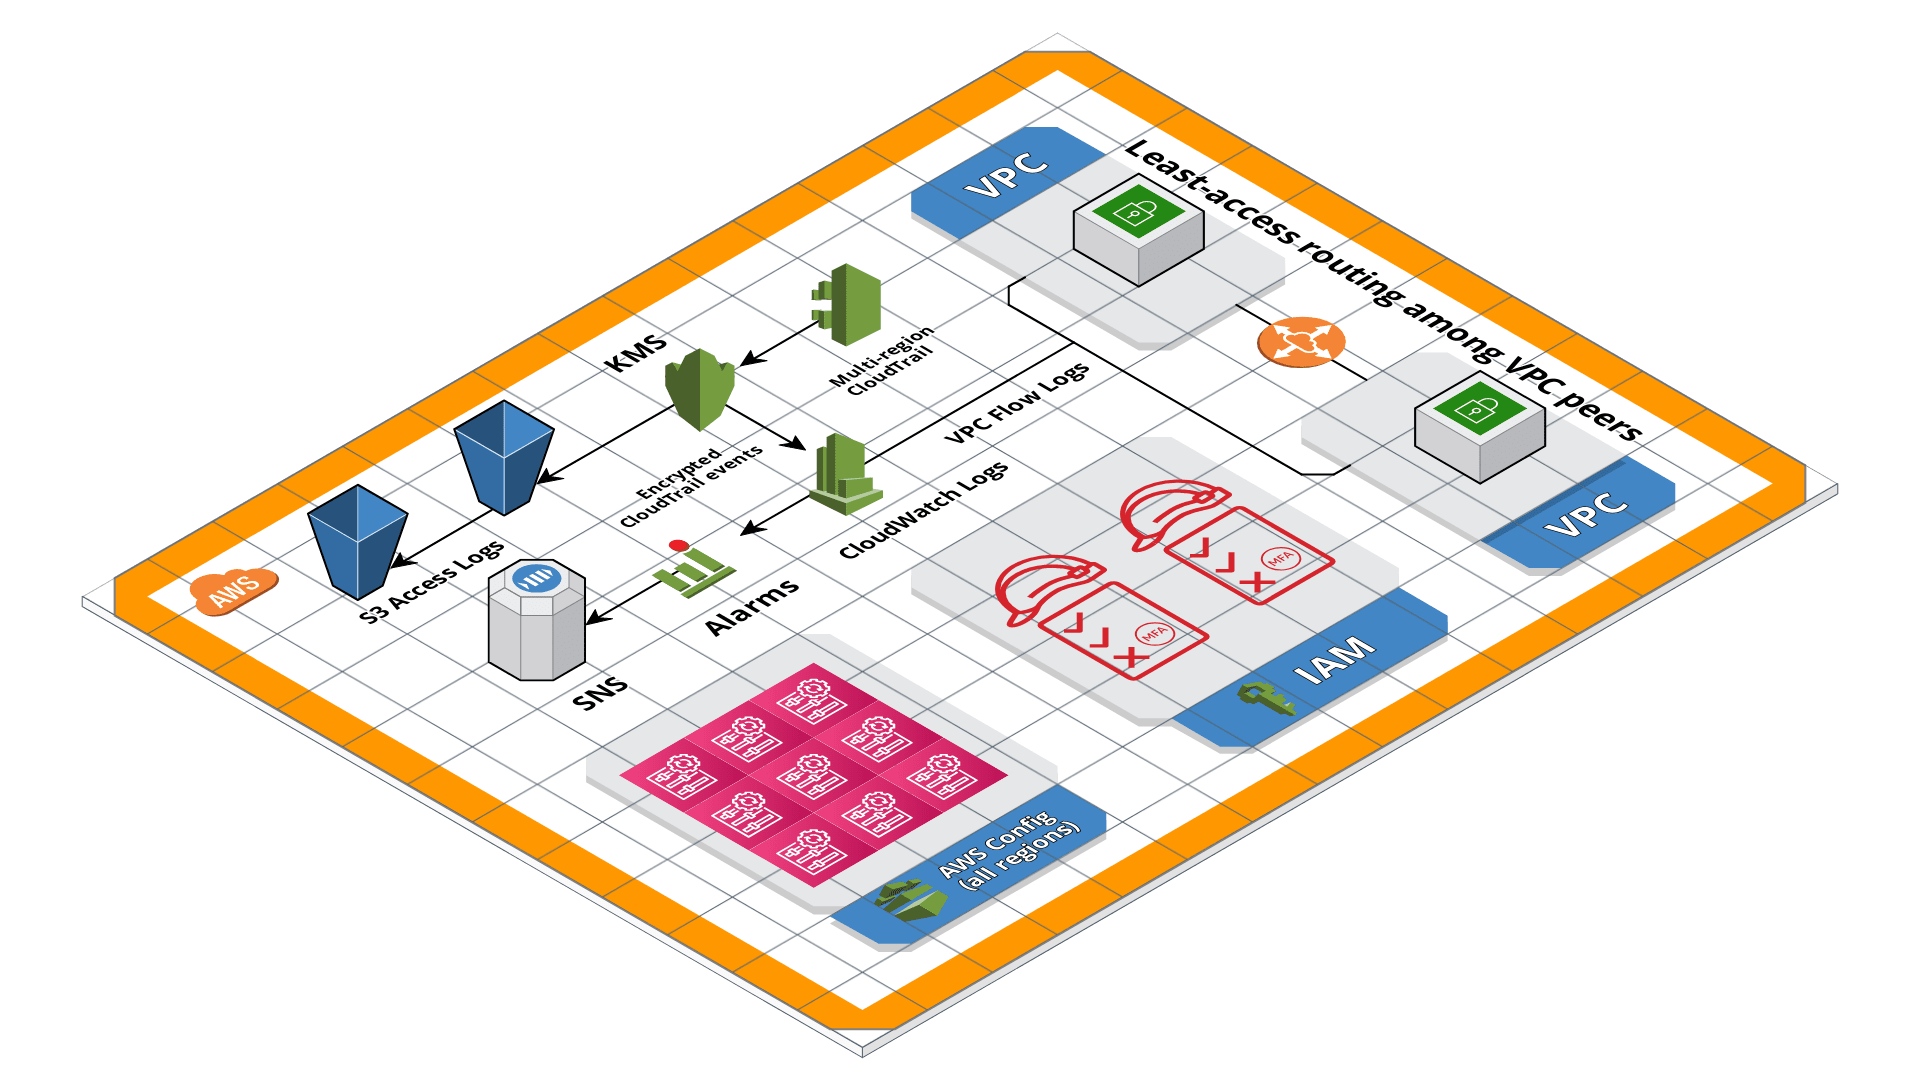 Gruntwork Reference Architecture